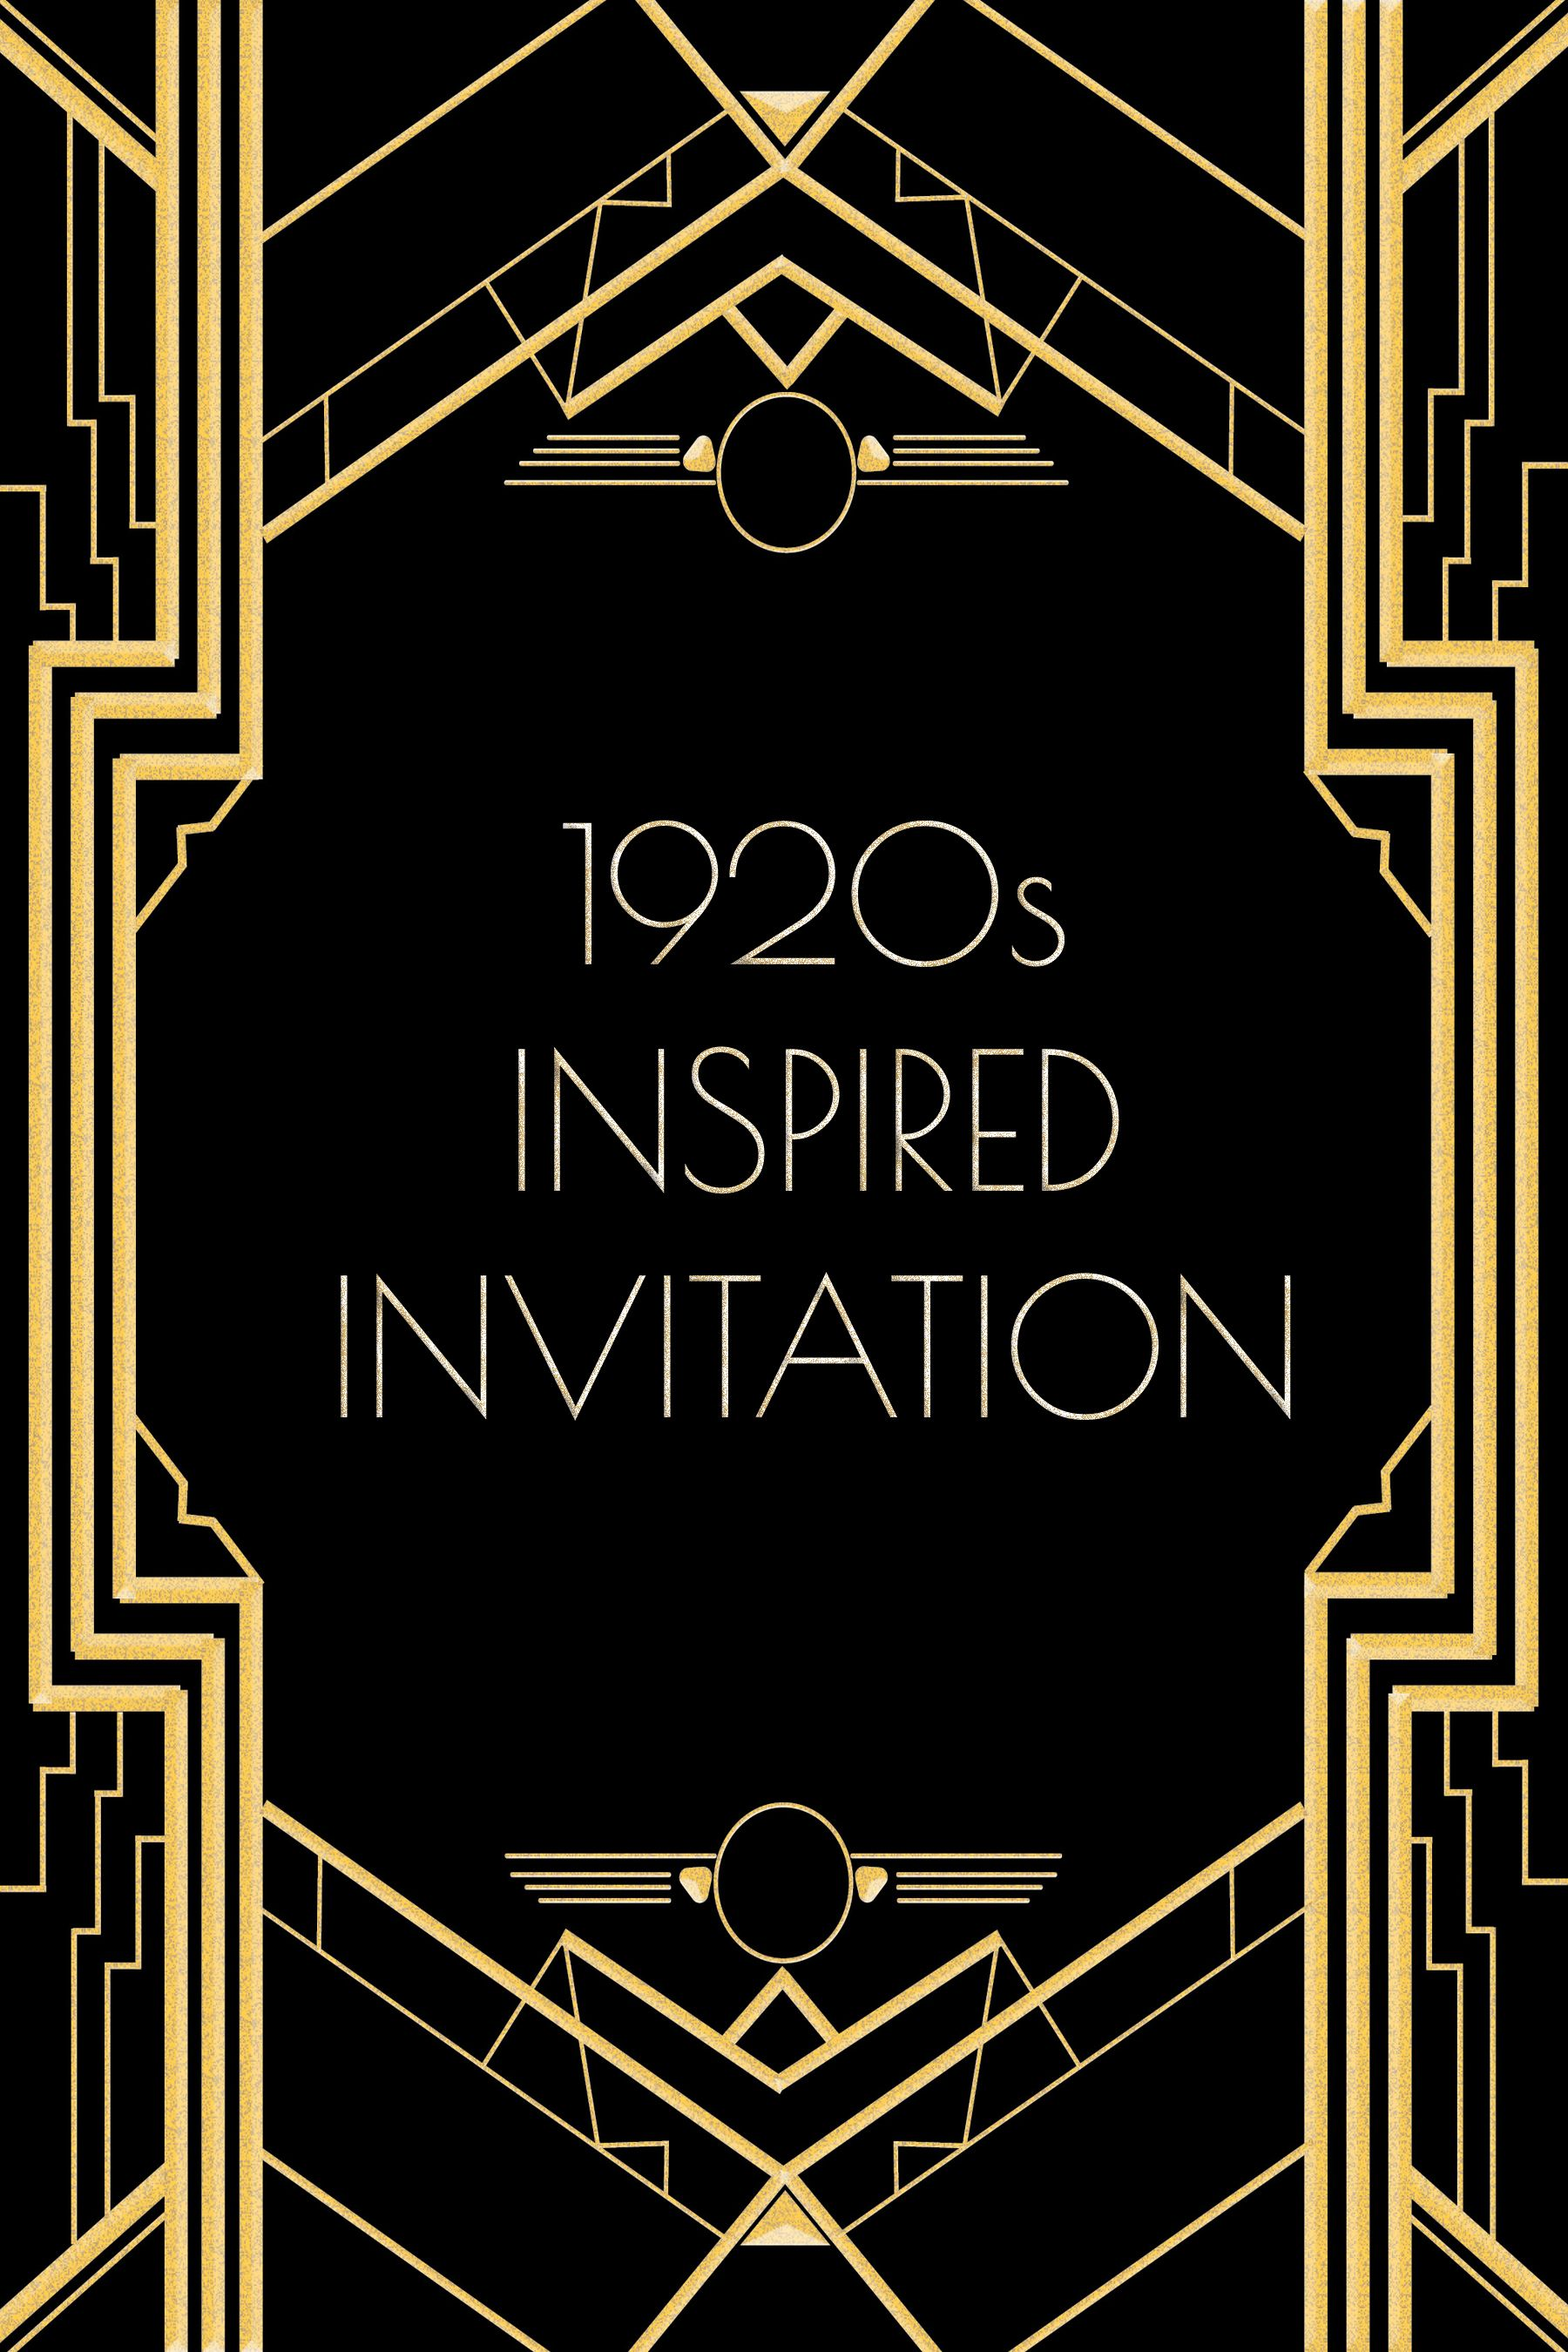 20s years cabaret photos Use this 1920s inspired invitation